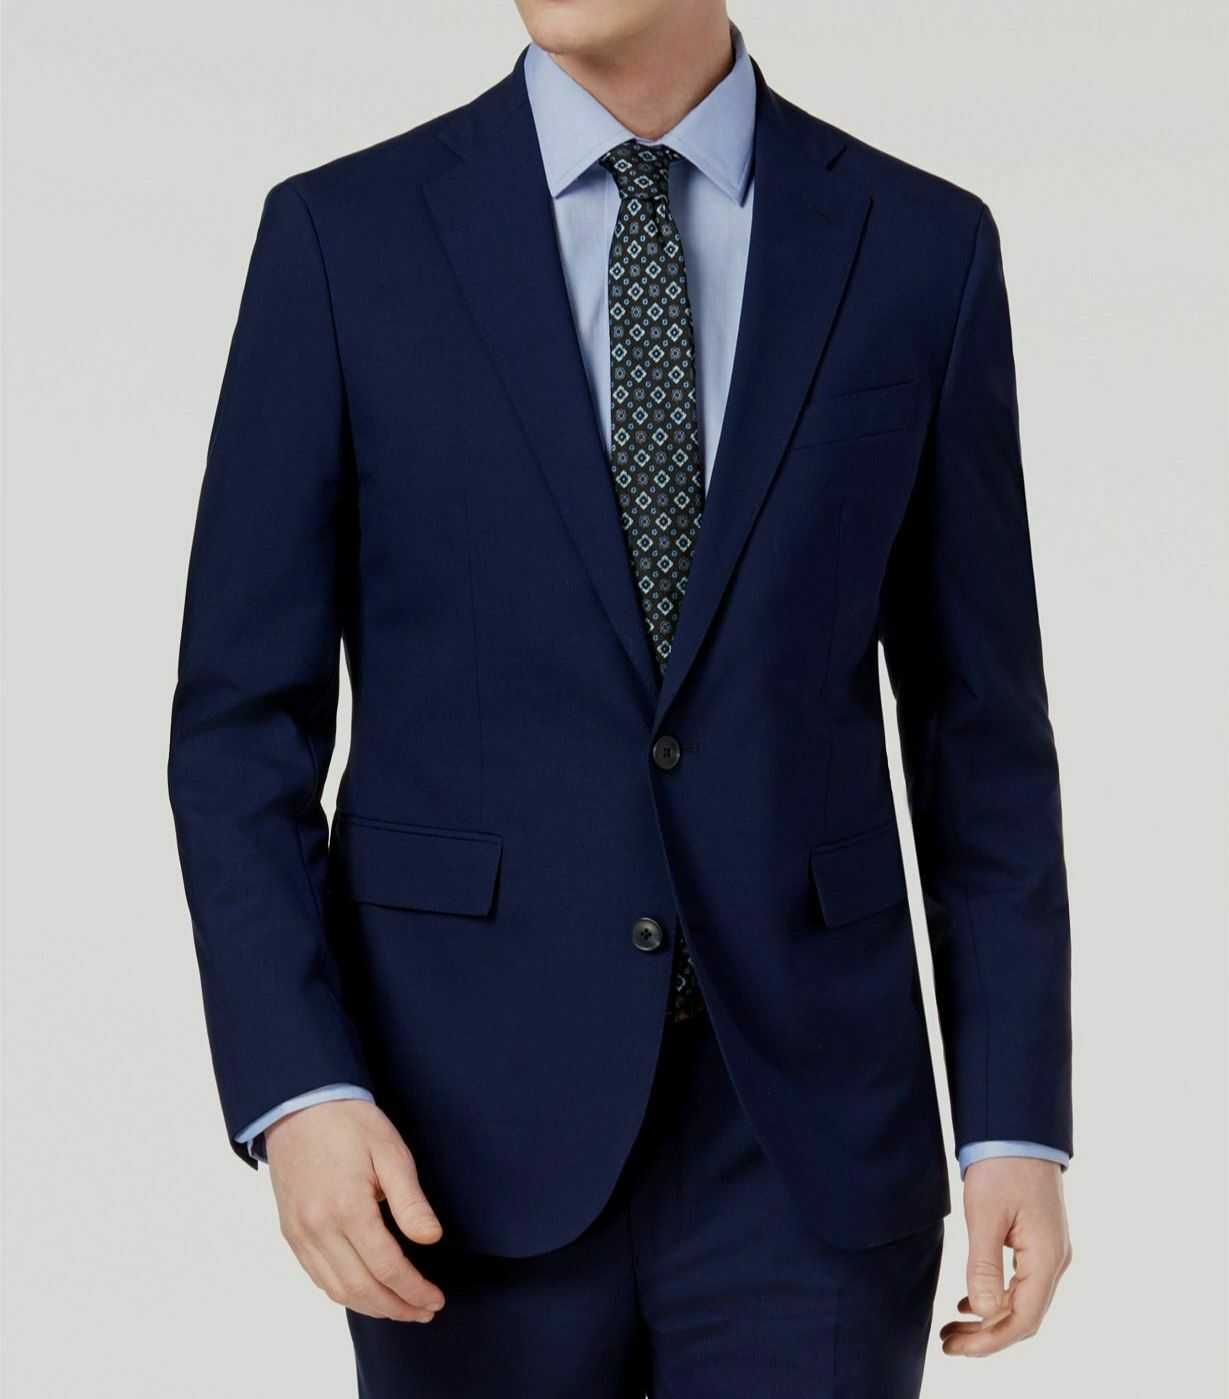 Cole Haan Mens Slim Fit Stretch Suit Separates-Custom Jacket /& Pant Size Selection 40S Blue Windowpane